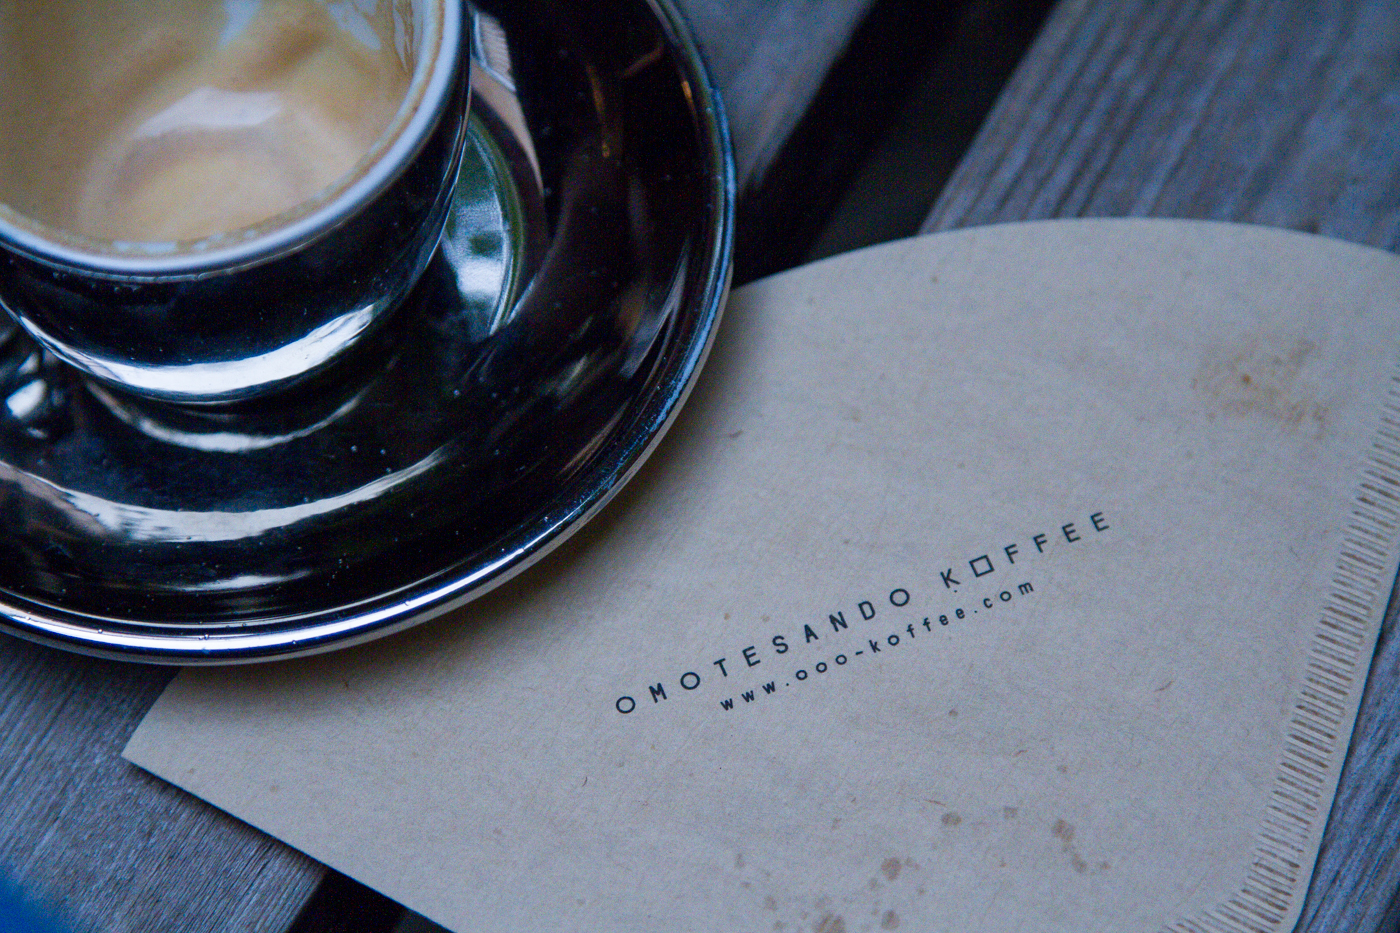 top view of coffee cup and napkin printed with omotesando koffee